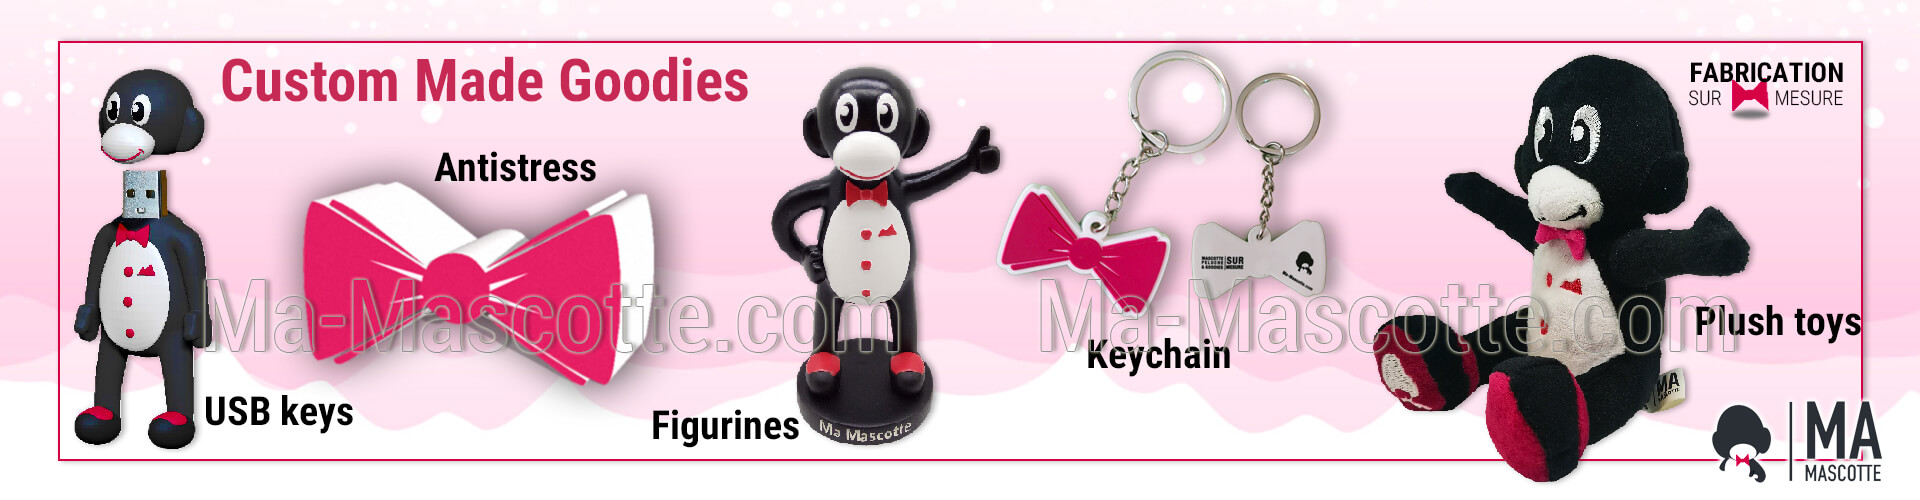 Custom made goodies. Custom-made promotional items: plush, figurine, keychain, anti-stress, USB keys, statue.